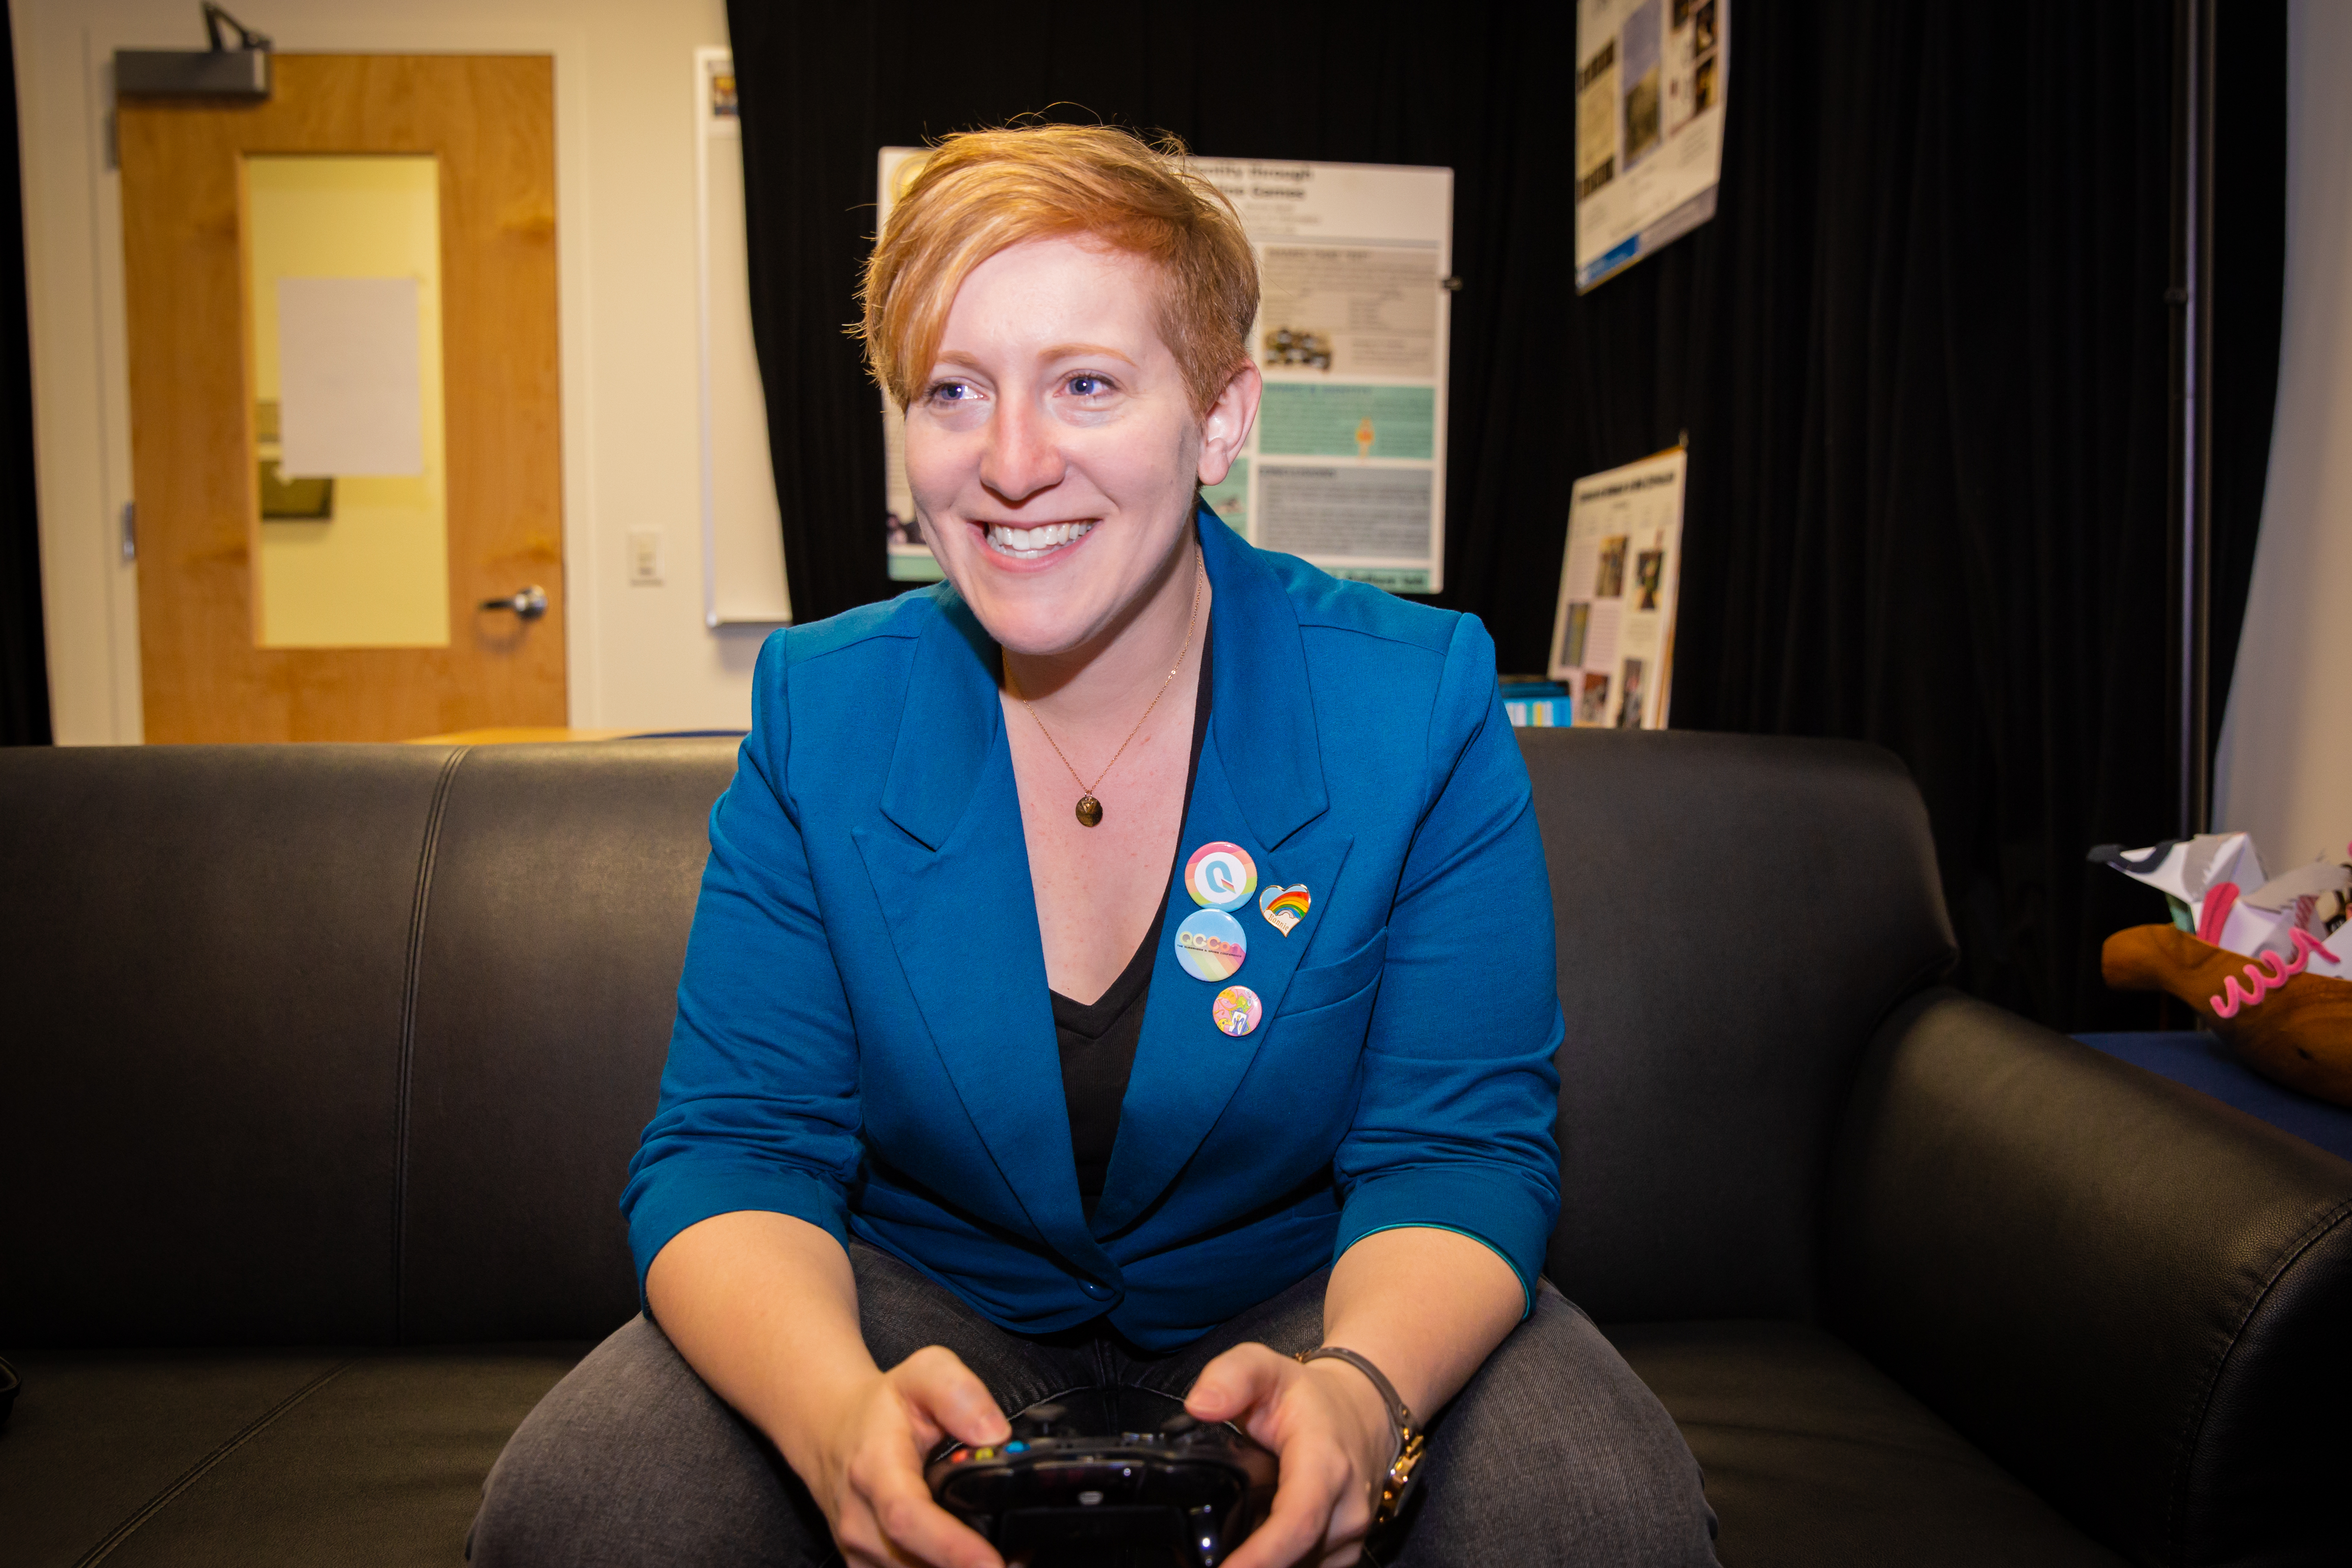 Bonnie Ruberg, a white professor with short, red hair, and wearing an ocean blue blazer, sits on a couch with a game controller in her hand